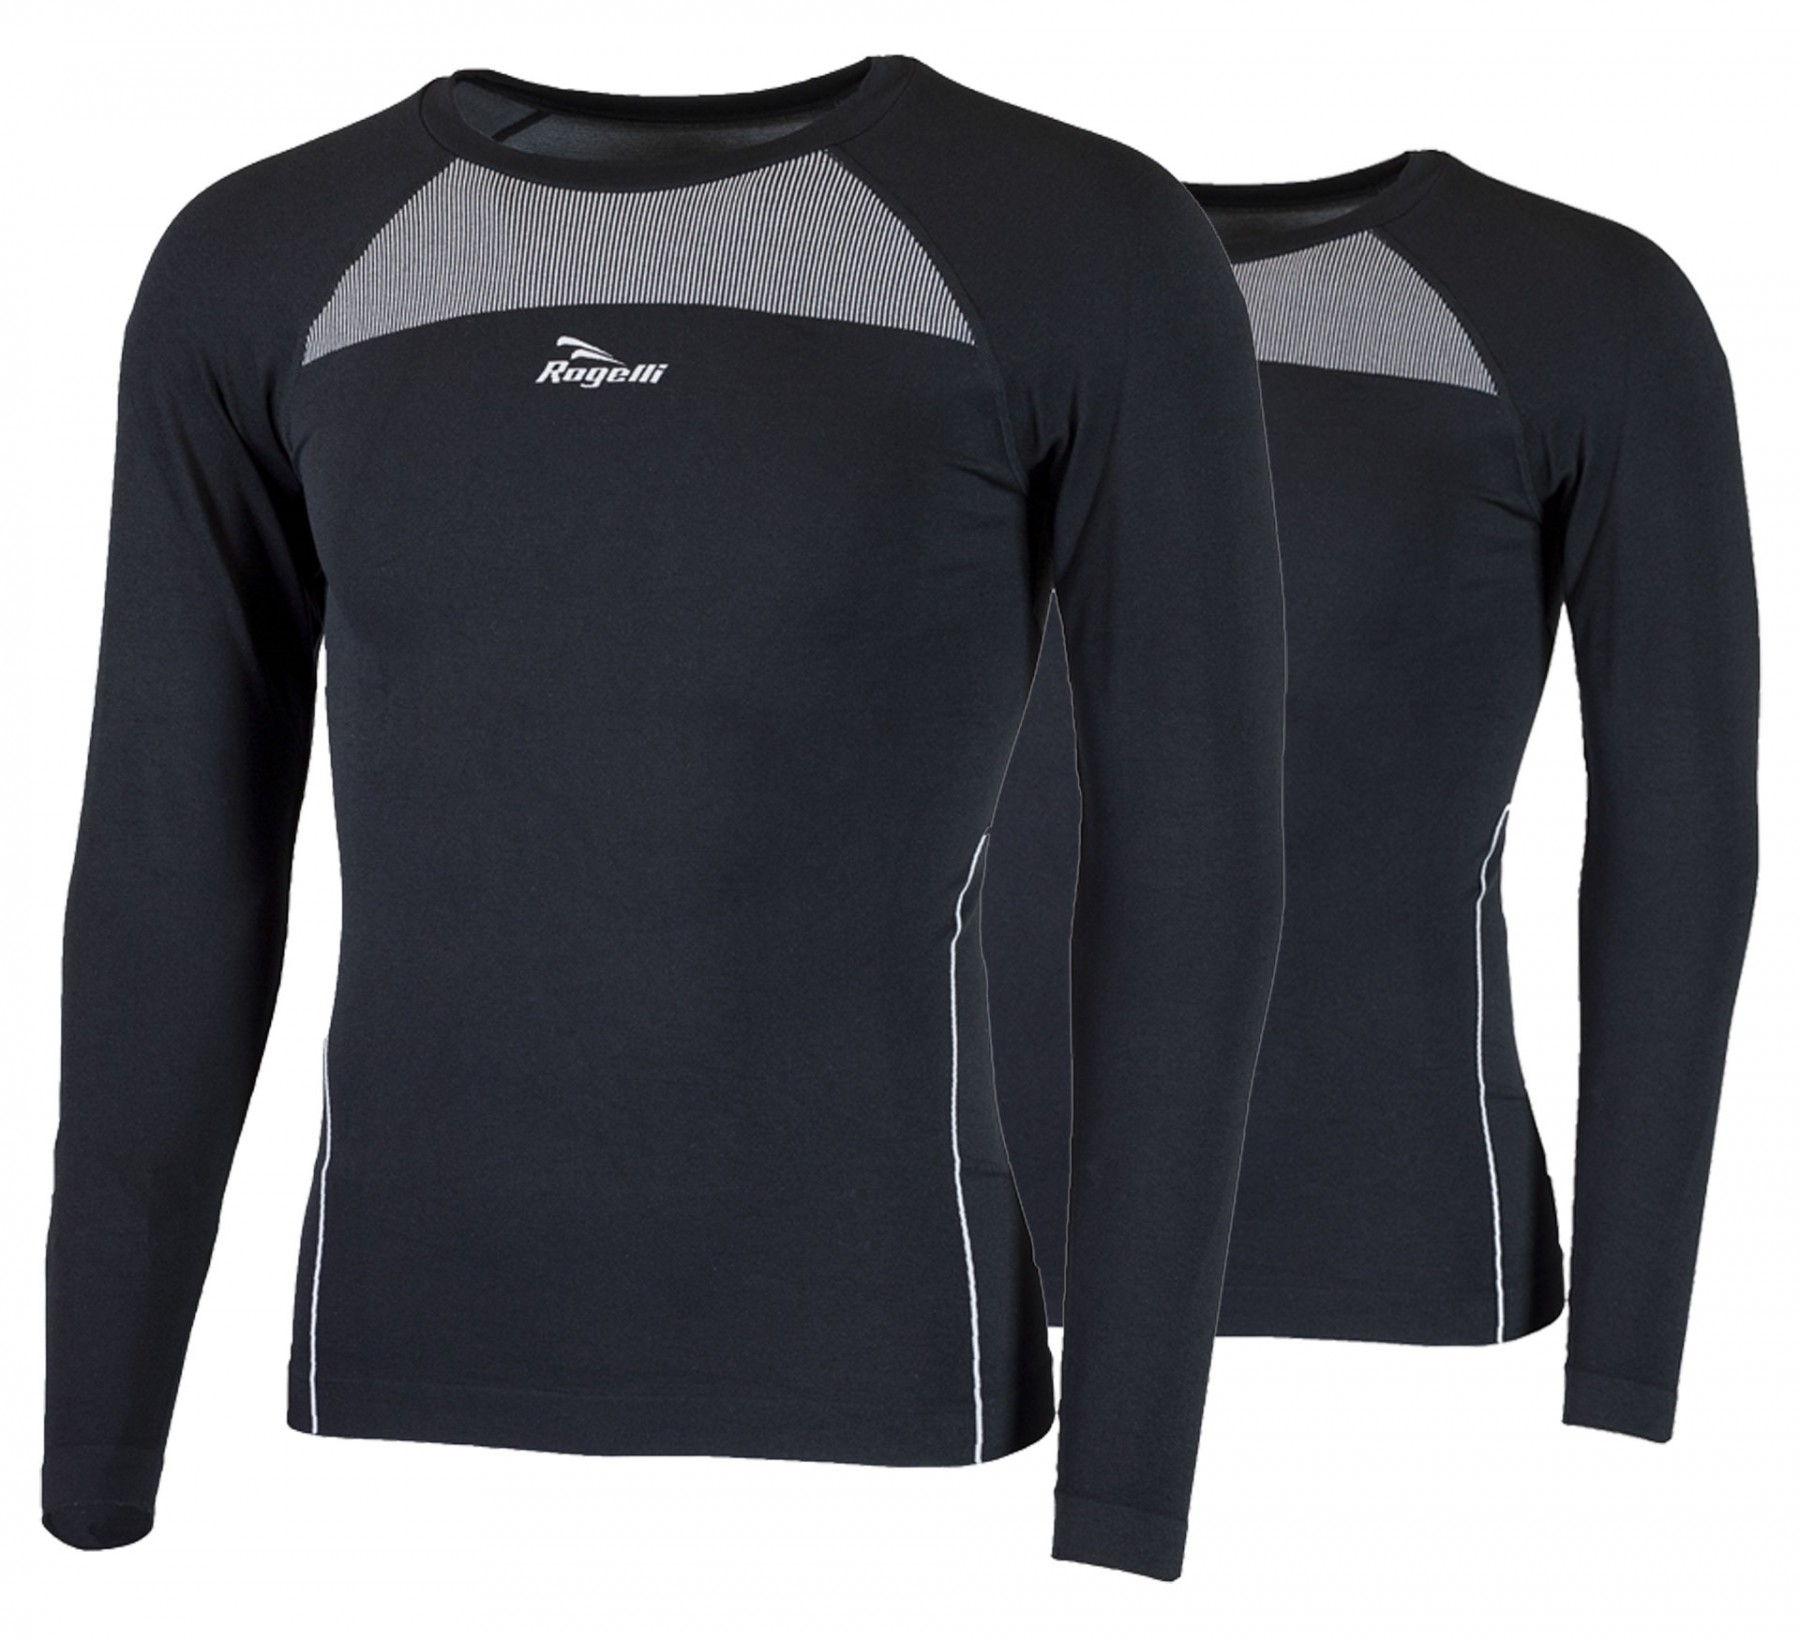 rogelli_core_undershirt_ls_2-pack_